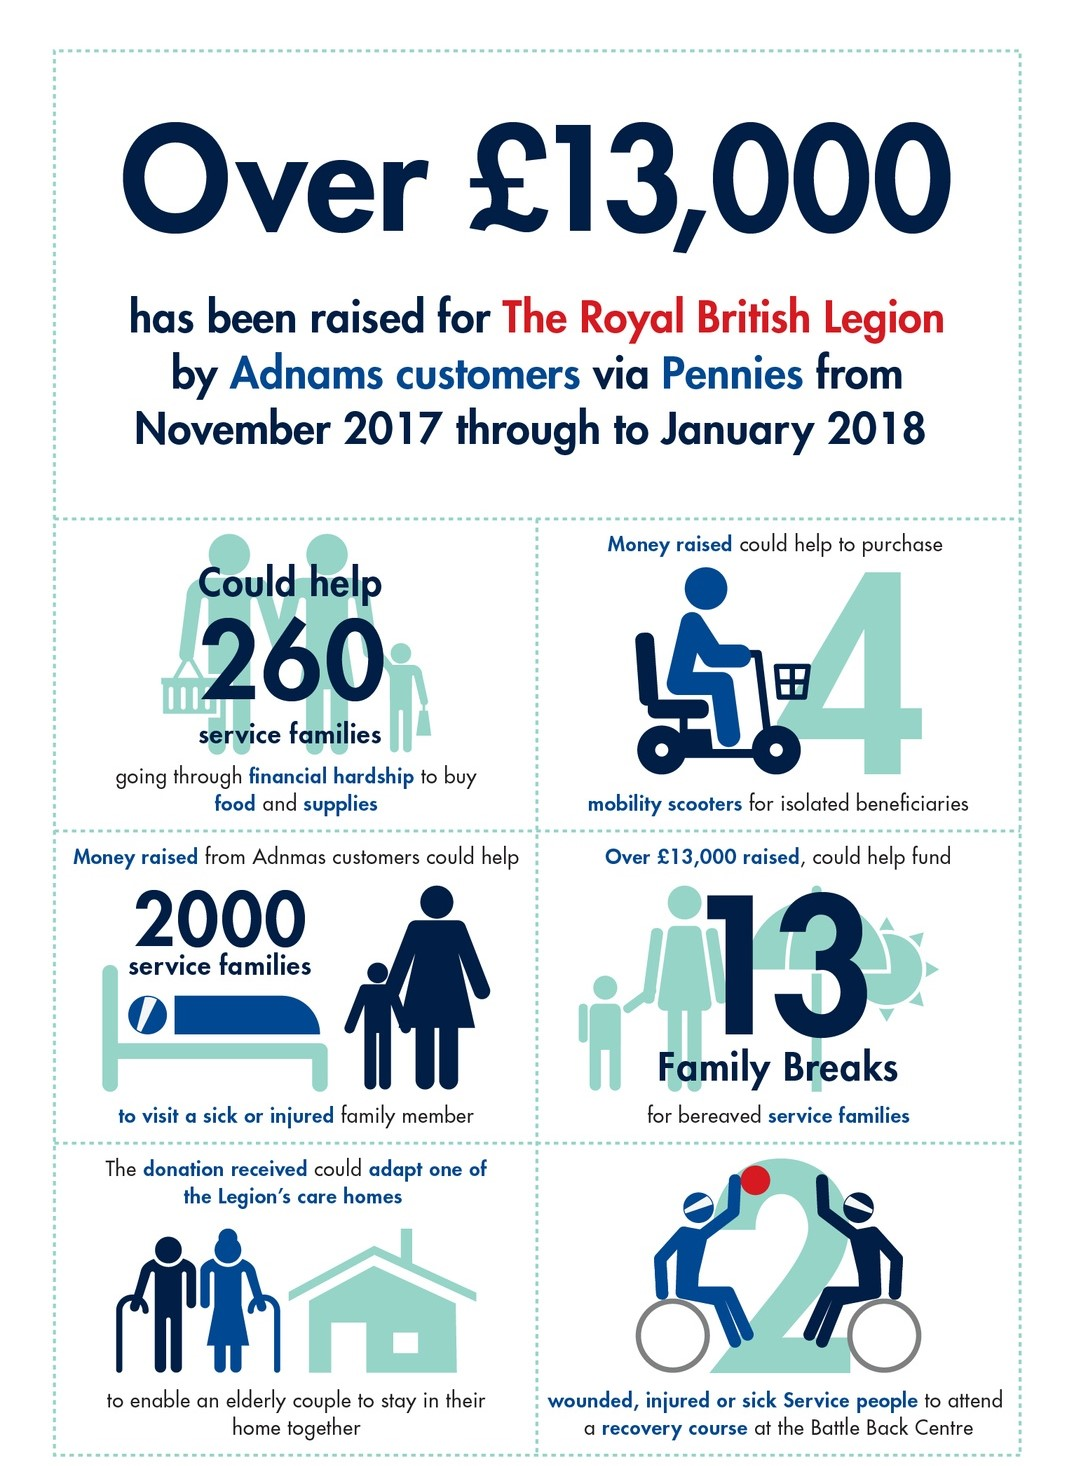 Pennies infographic showing how money raised through the scheme can help service families.